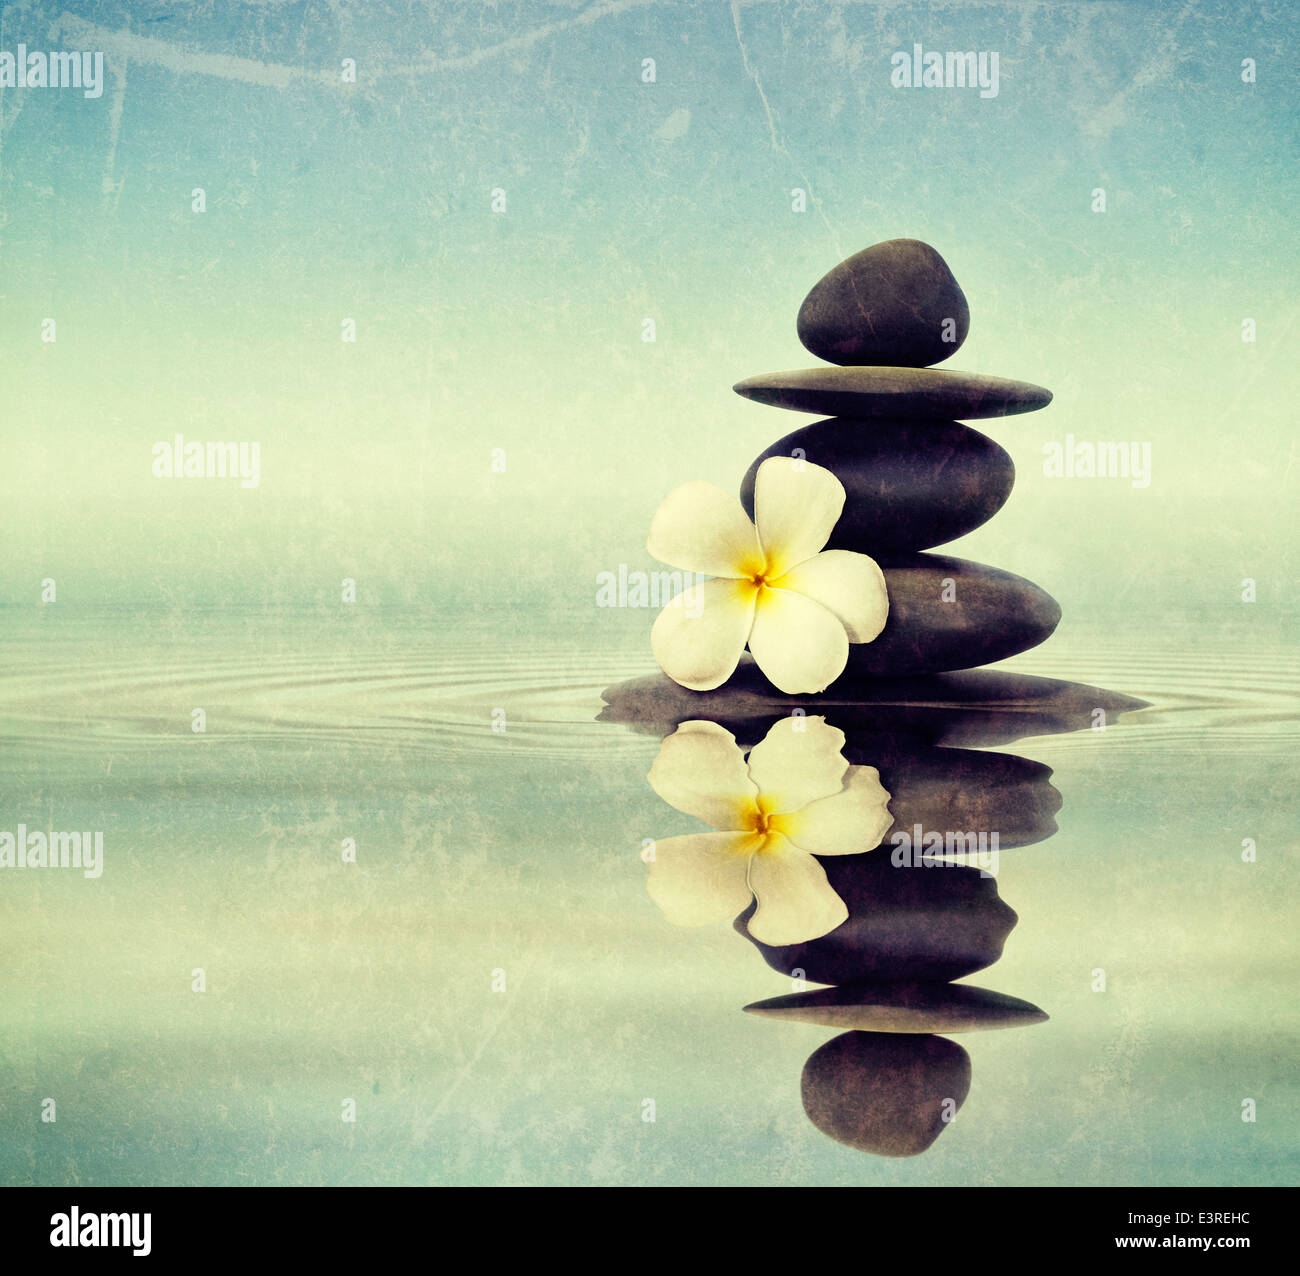 Zen Meditation Spa Relaxation Background Balanced Stones Stack With Stock Photo Alamy